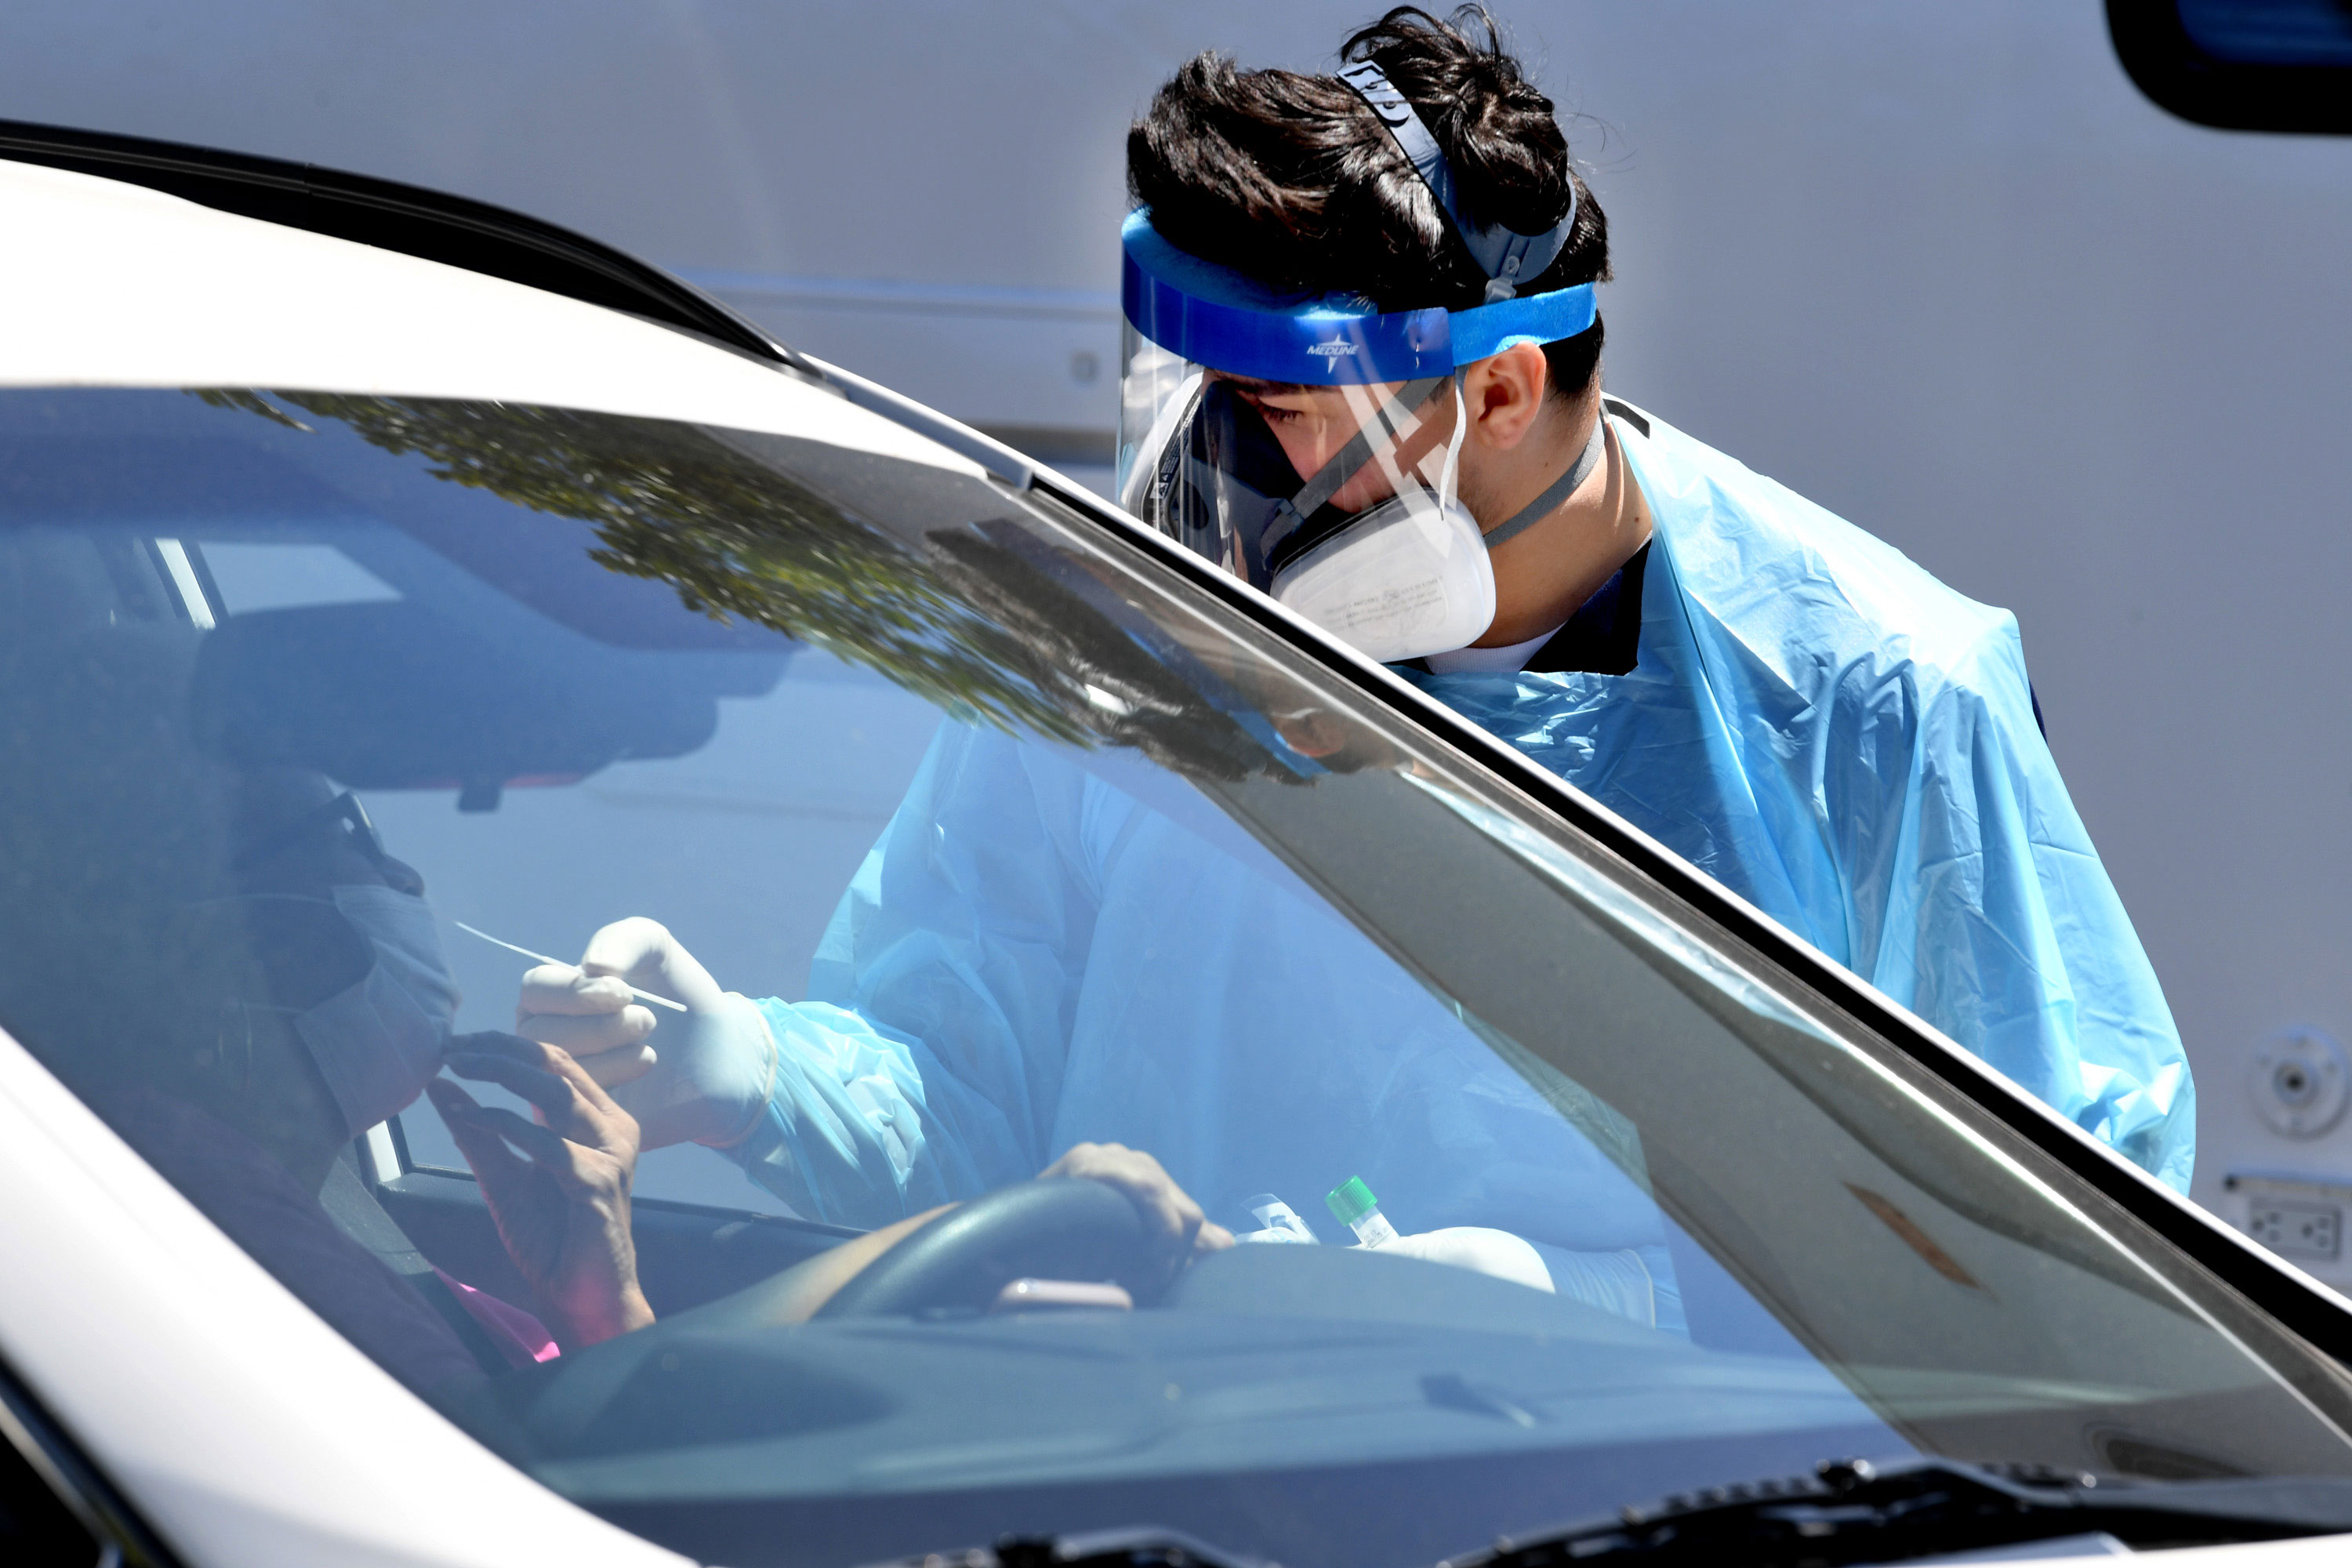 A worker administers a coronavirus test swab at a drive-thru testing site on April 24 in Los Angeles, California.